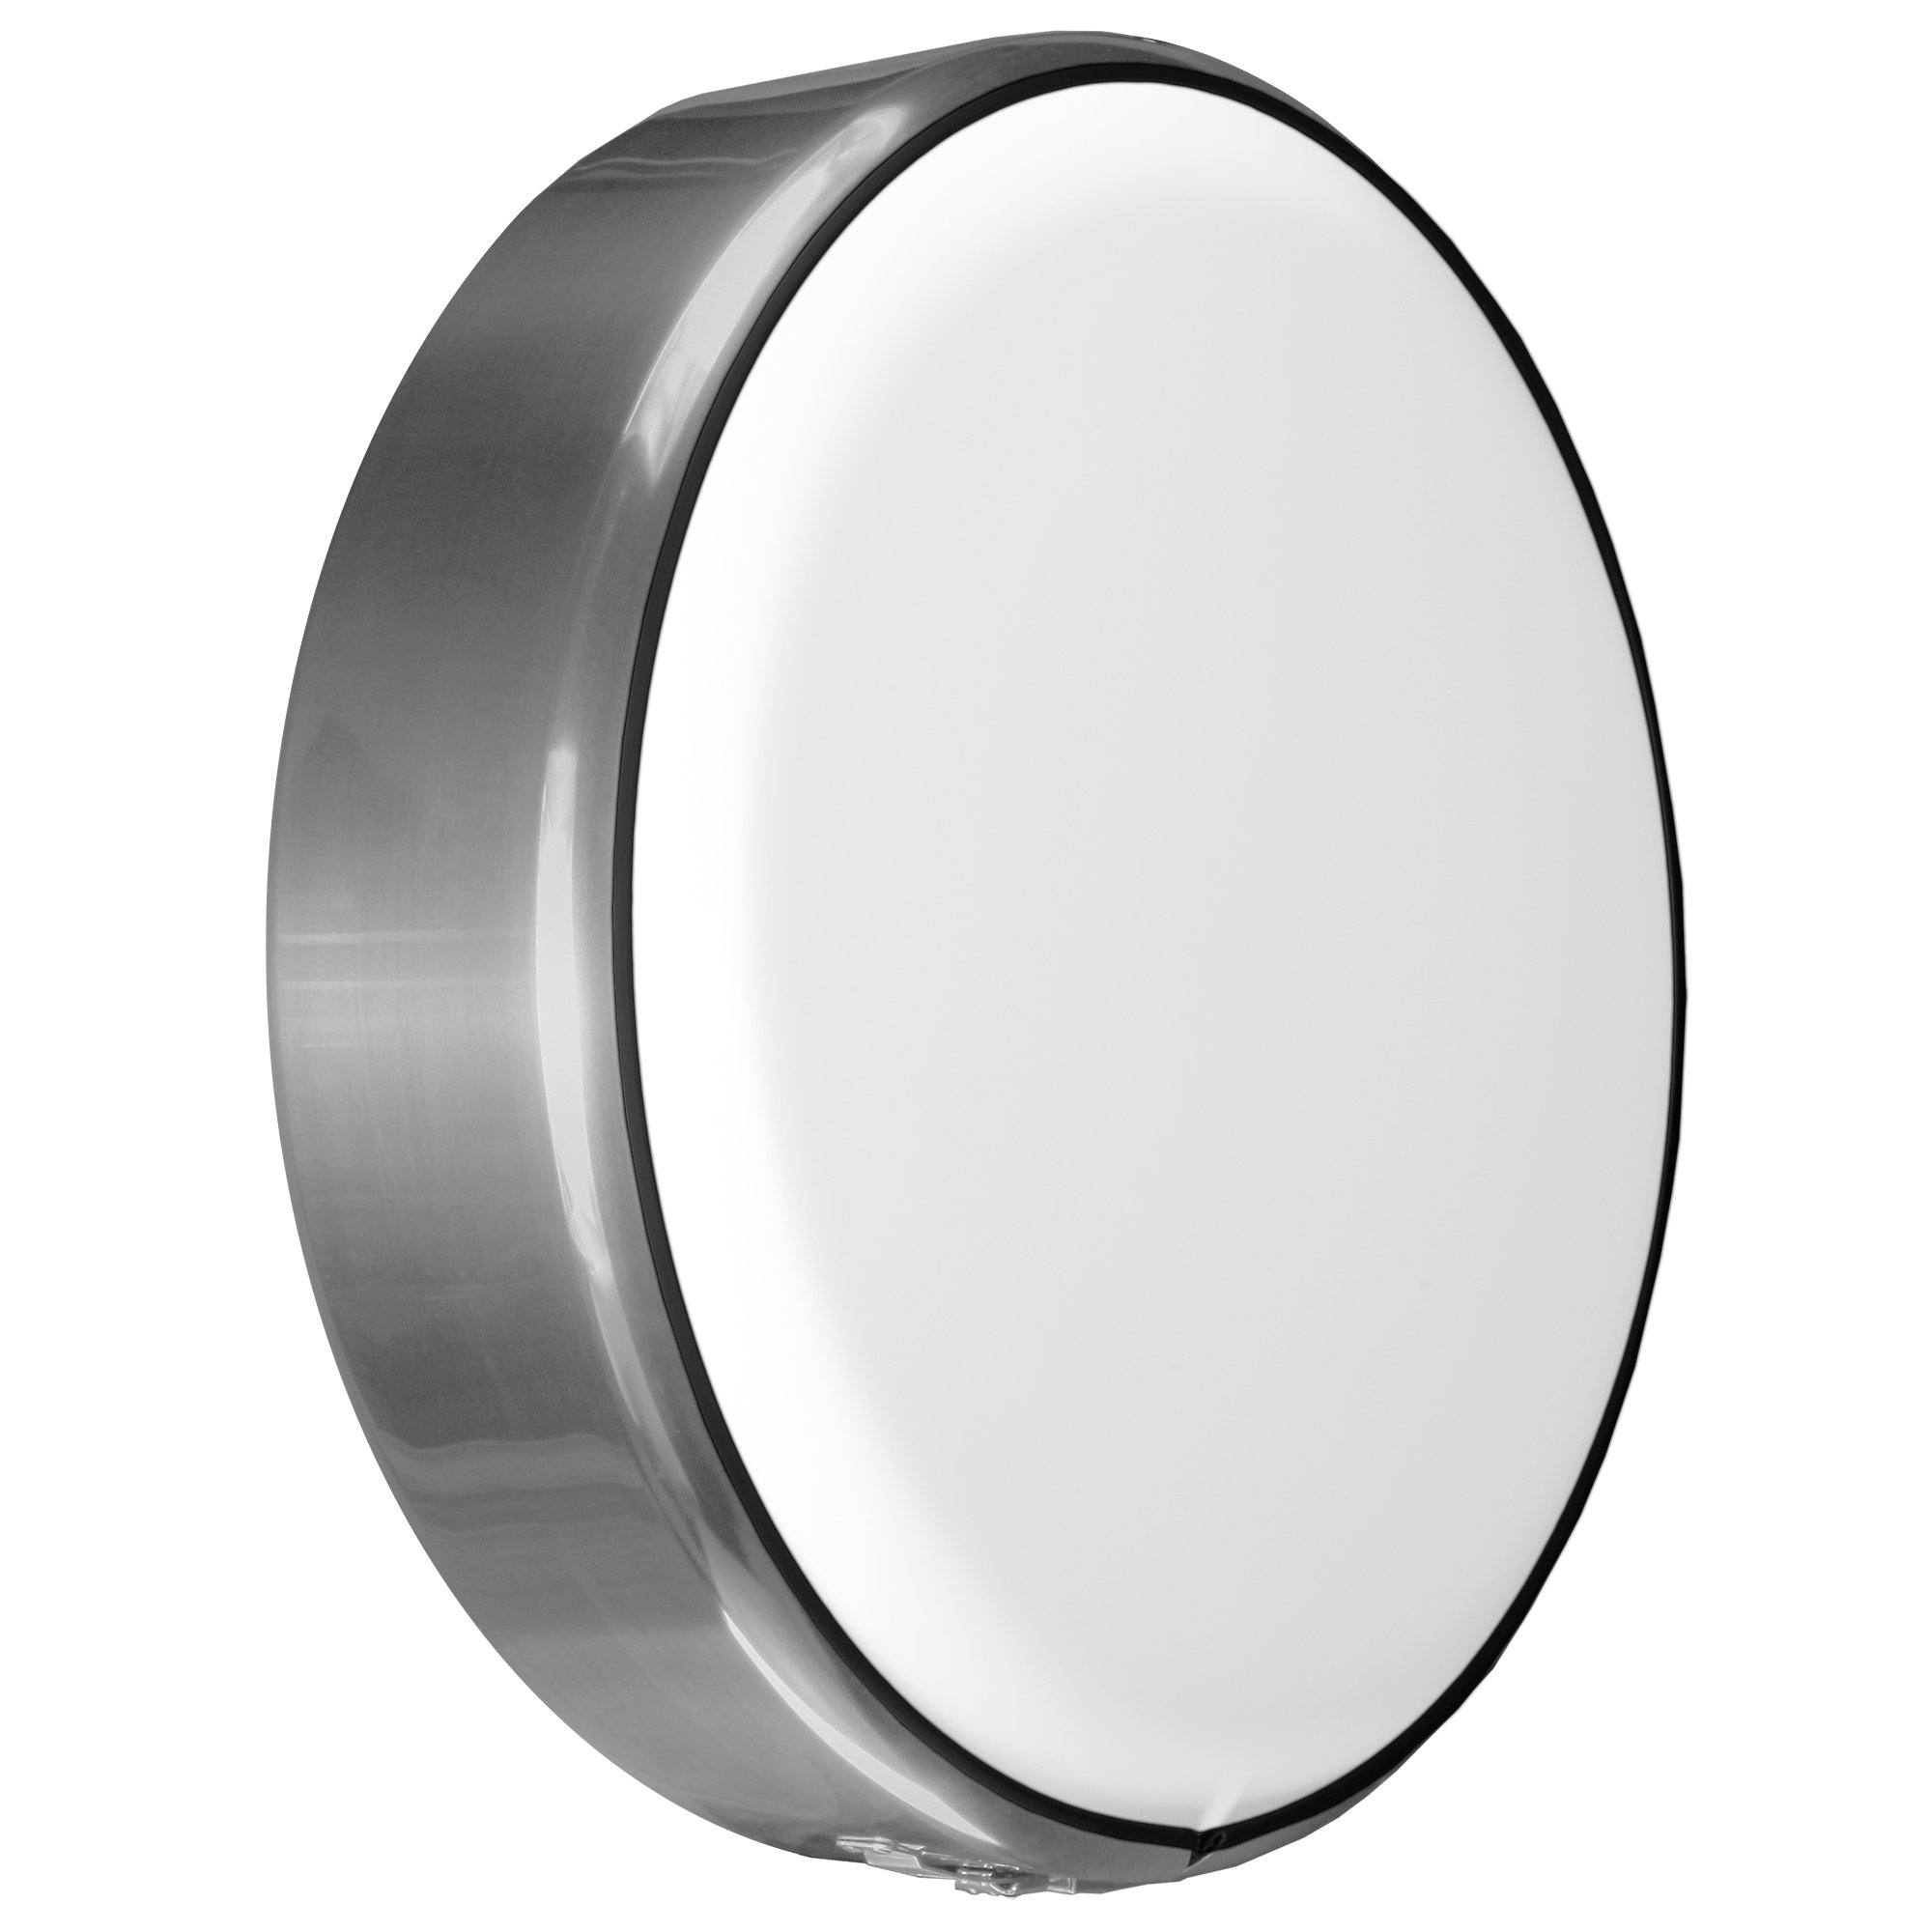 MasterSeries - Continental Tire Cover Kit (215/85R16 ) - (Molded Plastic Face & Polished Stainless Ring) - White Dish